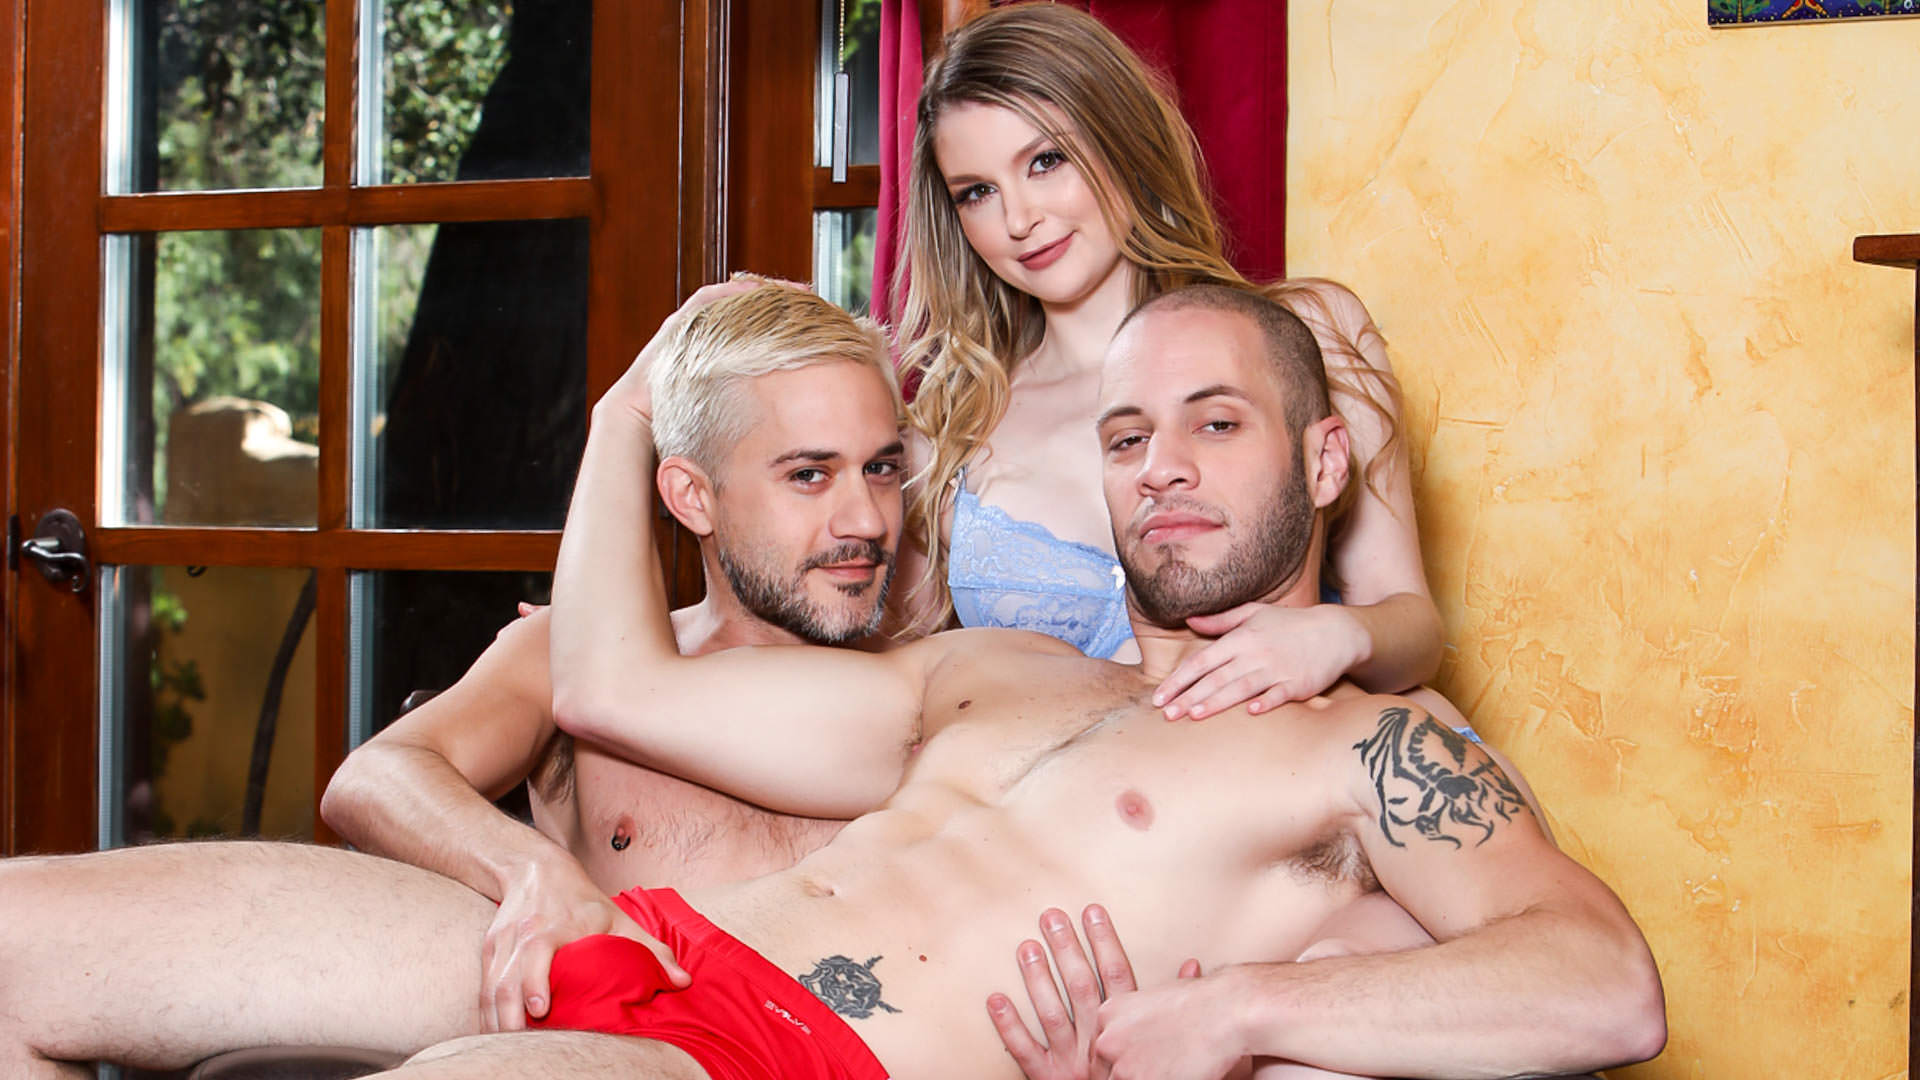 Bi For Now - Wolf Hudson & Bunny Colby & Sherman Maus 1